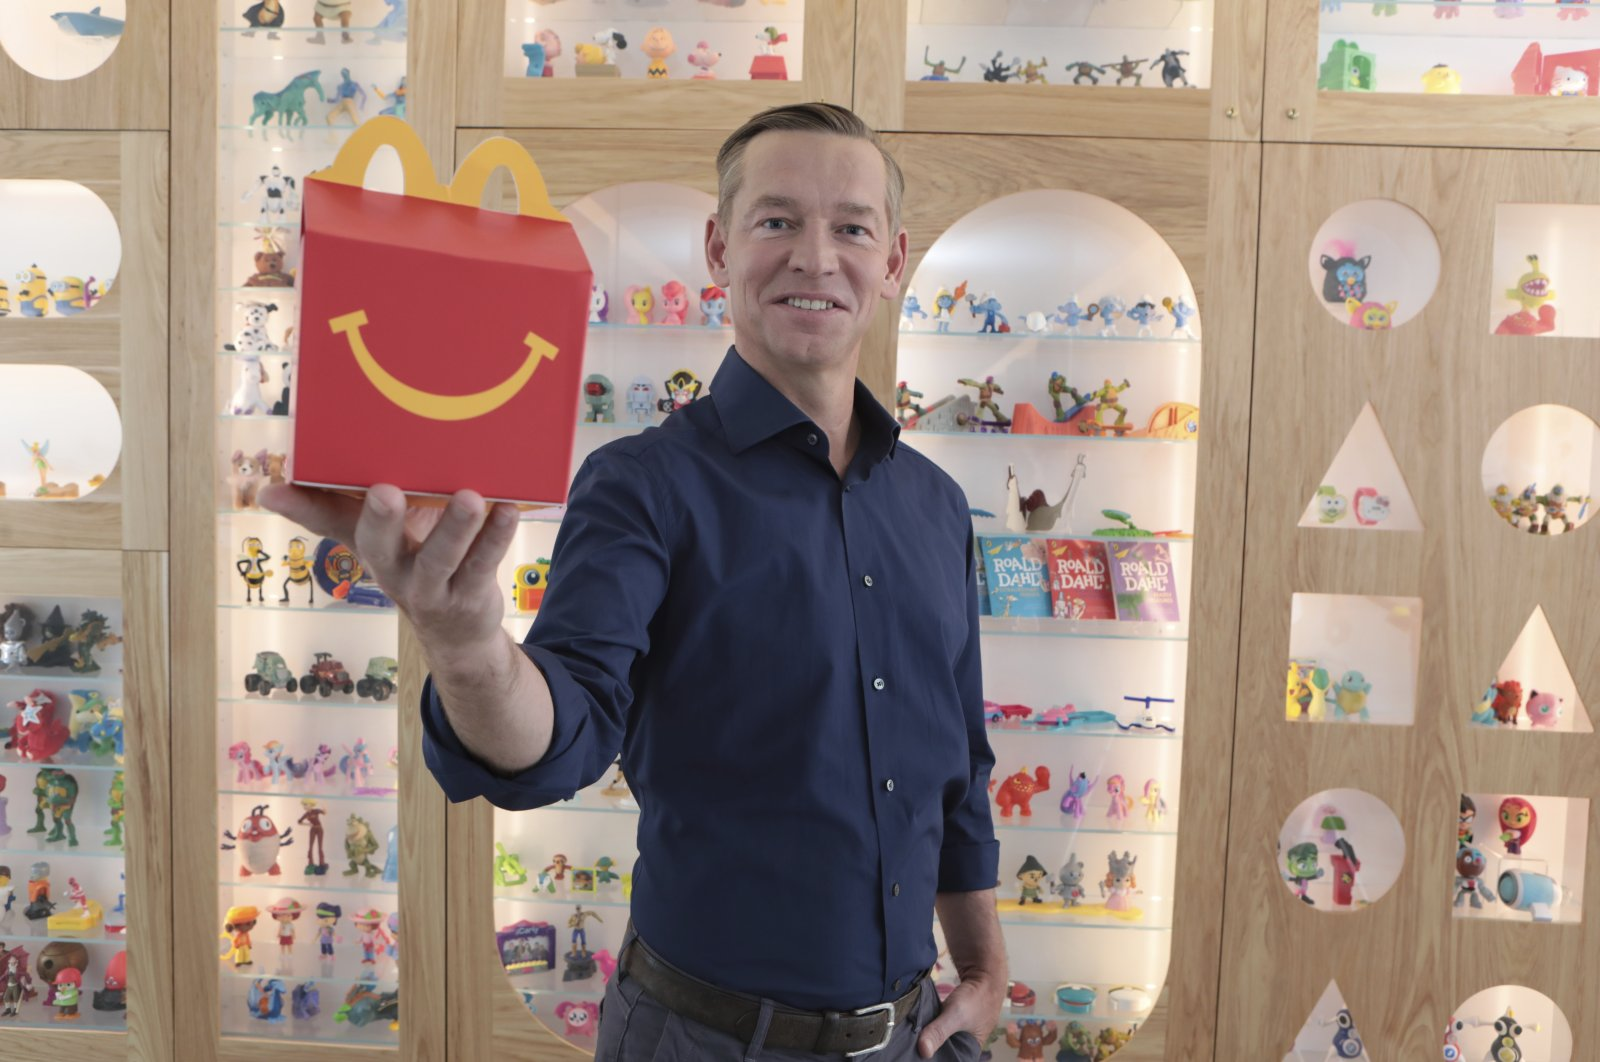 McDonald's CEO Chris Kempczinski with a Happy Meal at McDonald's Headquarters, Chicago, U.S., Aug 13, 2021. (Jean-Marc Giboux/AP Images for McDonald's Corporation)